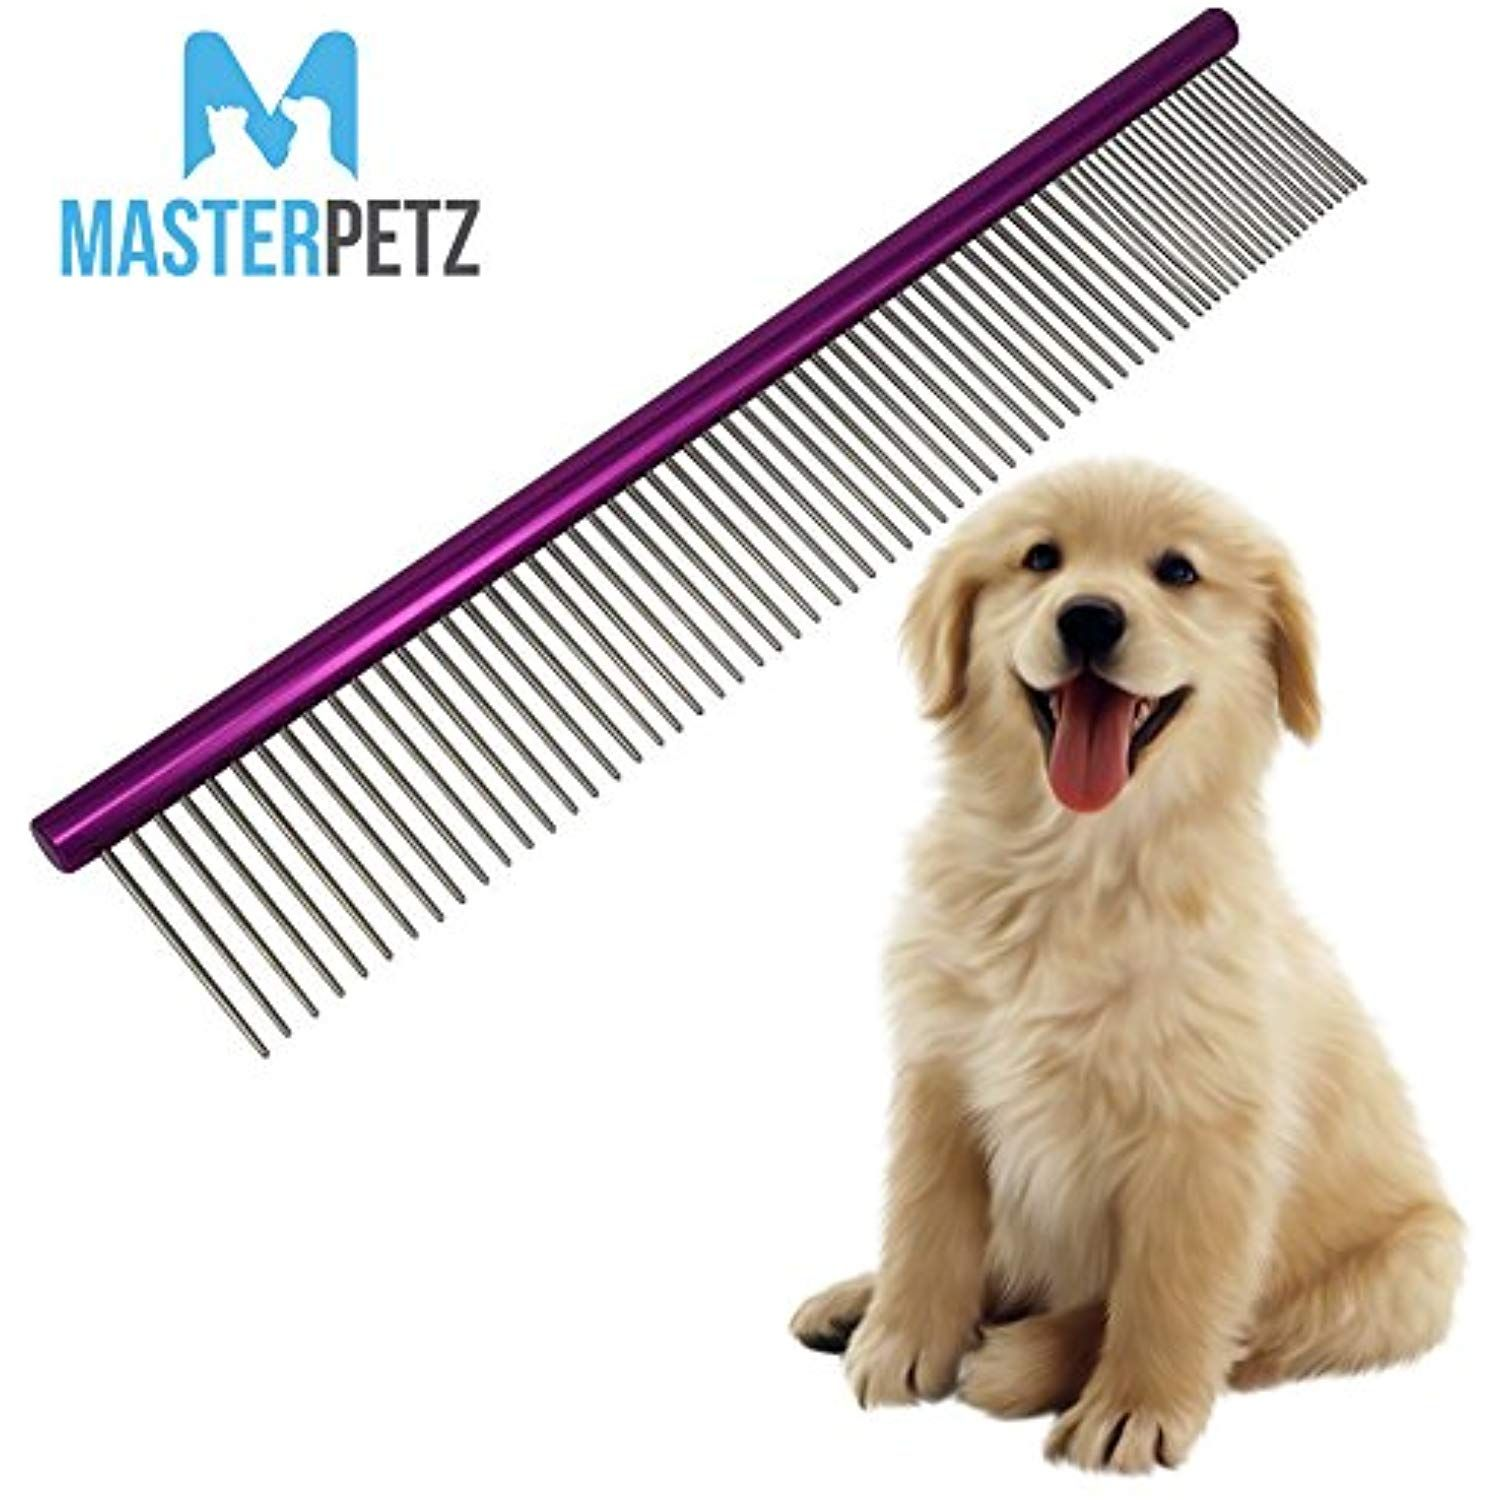 10 Dog Brush Pet Grooming Dematting Comb For Cats Poodle